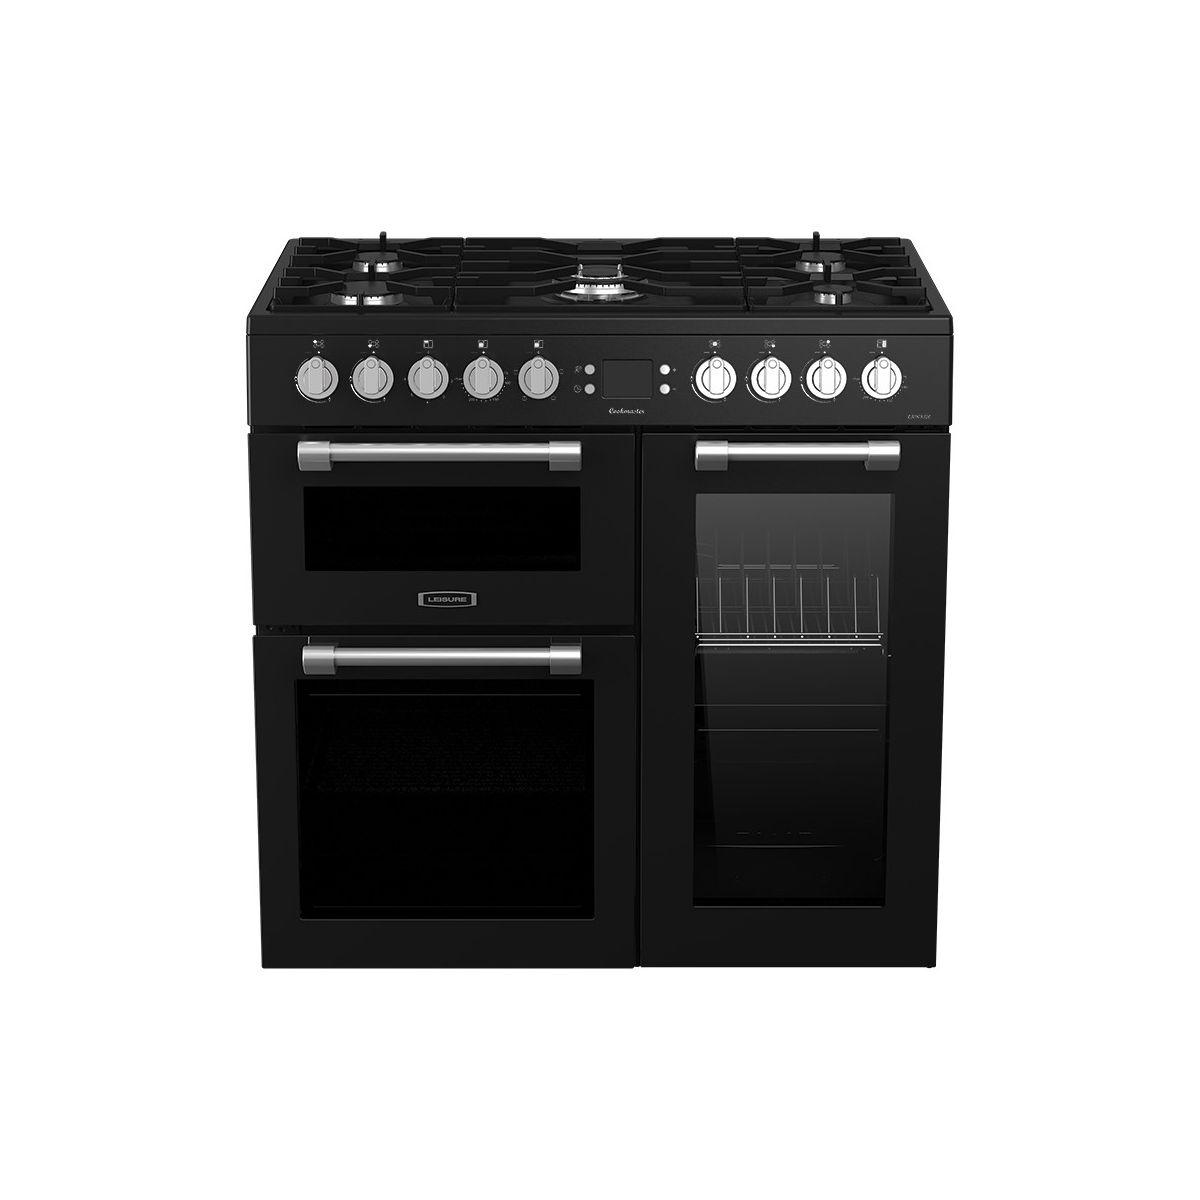 Piano de cuisson gaz leisure ck90f320kg (photo)